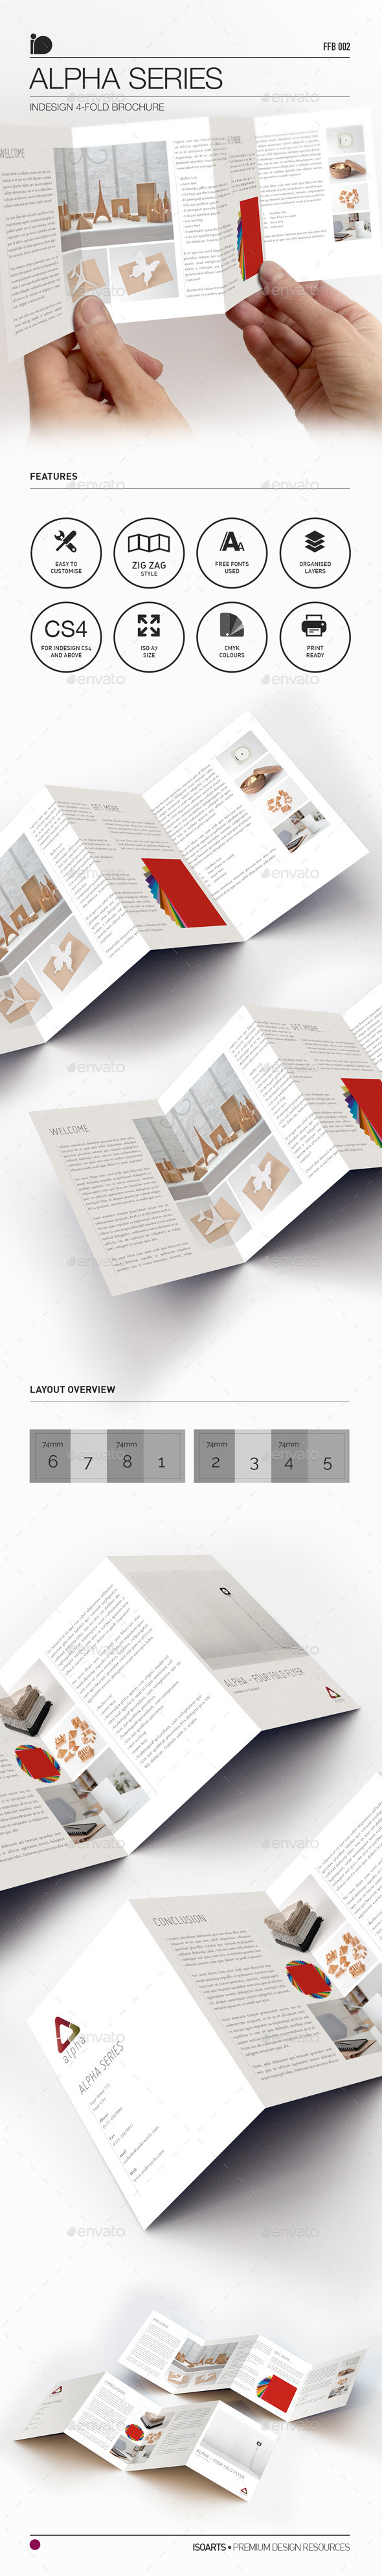 4-Fold Brochure • Alpha Series - Corporate Flyers